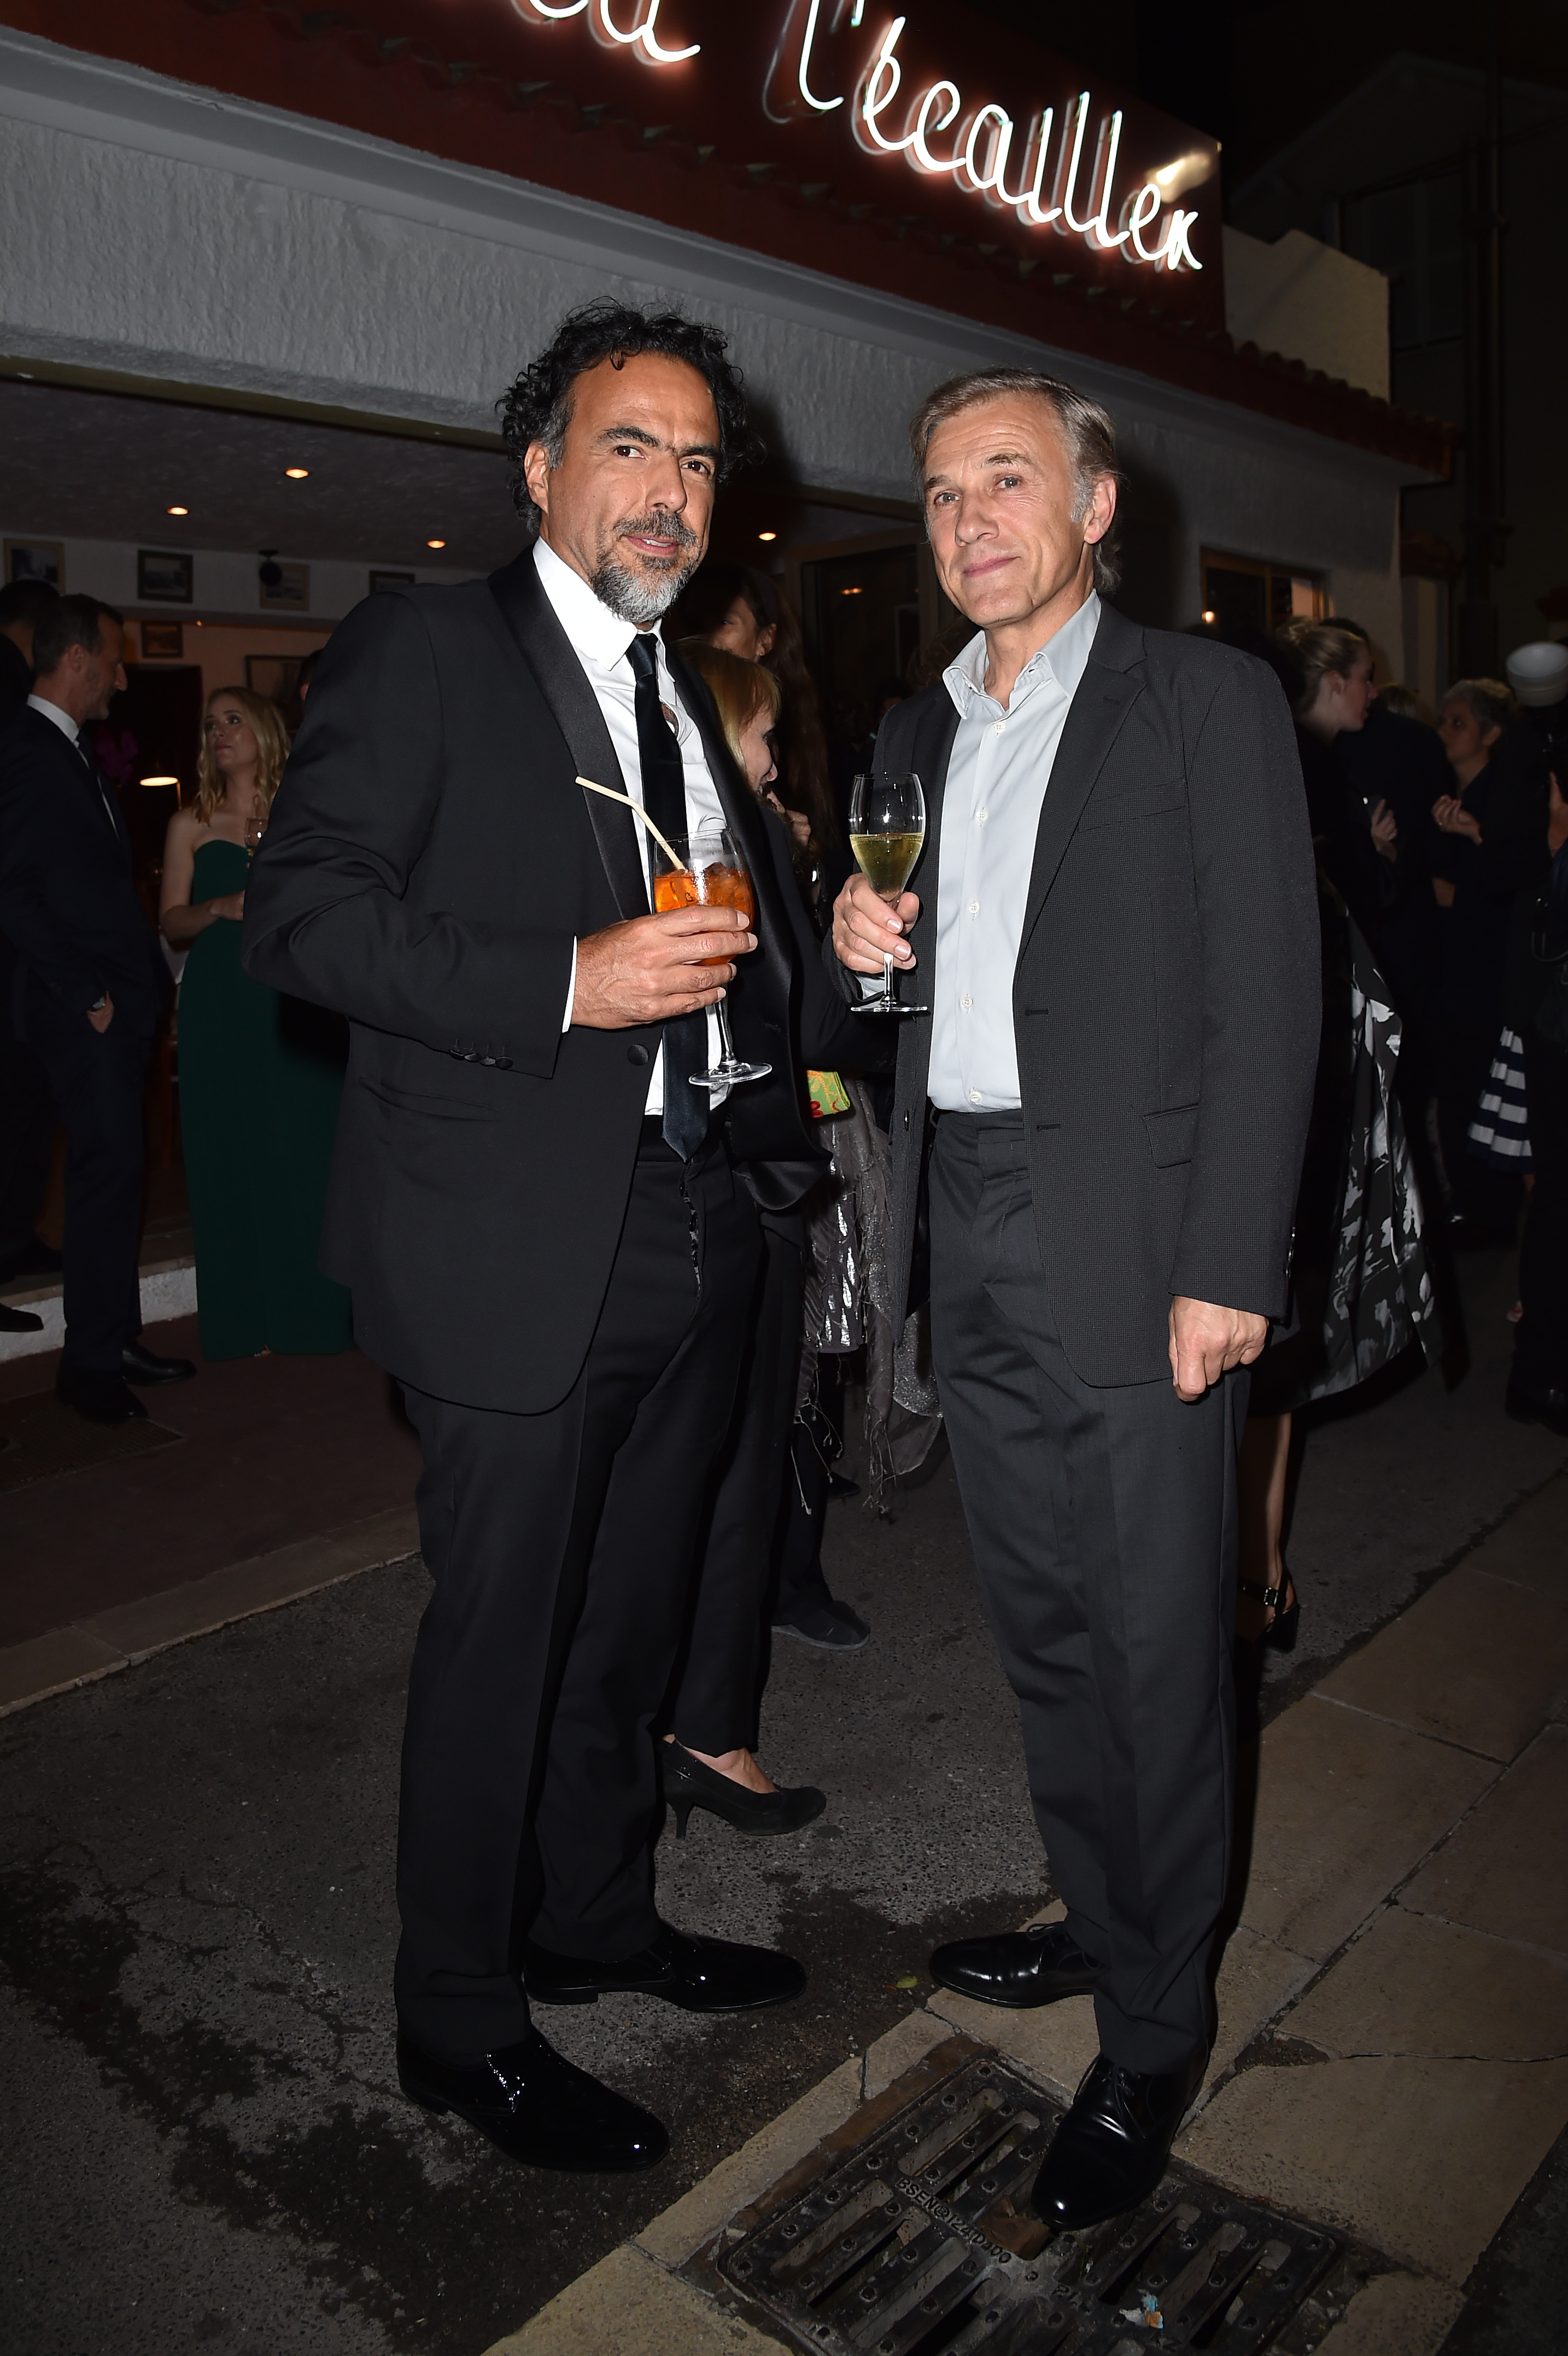 CANNES, FRANCE - MAY 22:  Alejandro Gonzalez Inarritu and Christoph Waltz attend Prada Private Dinner during the 70th annual Cannes Film Festival at Restaurant Fred L'Ecailler on May 22, 2017 in Cannes, France.  (Photo by Jacopo Raule/Getty Images for Prada)